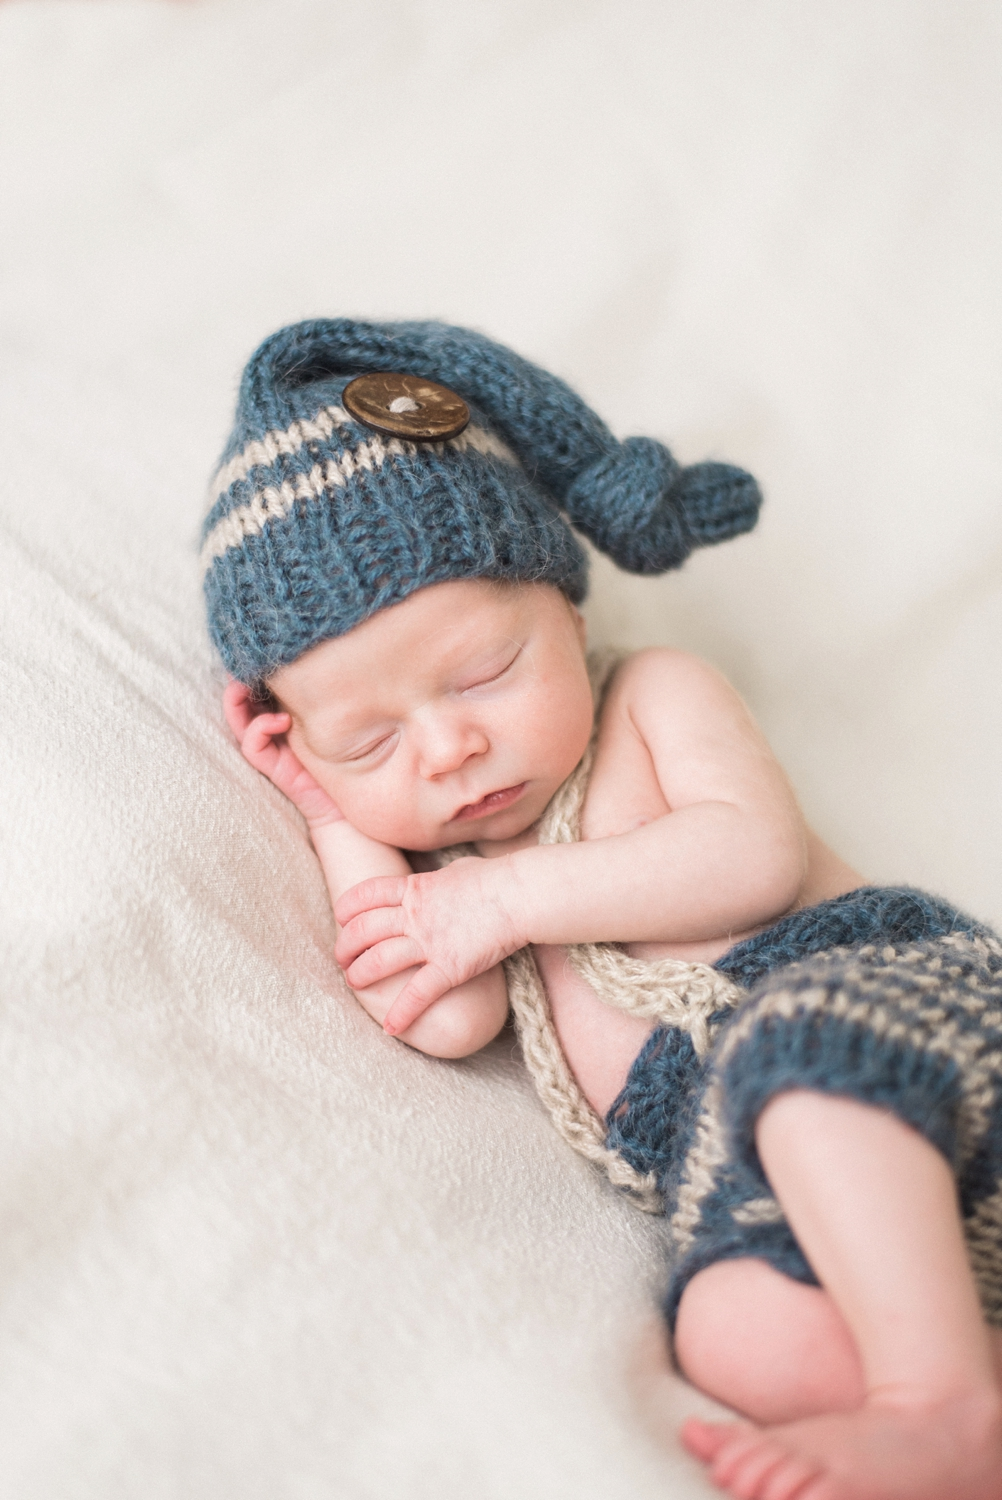 portland-newborn-session-baby-boy-knit-hat-overalls-shelley-marie-photo-134_cr.jpg